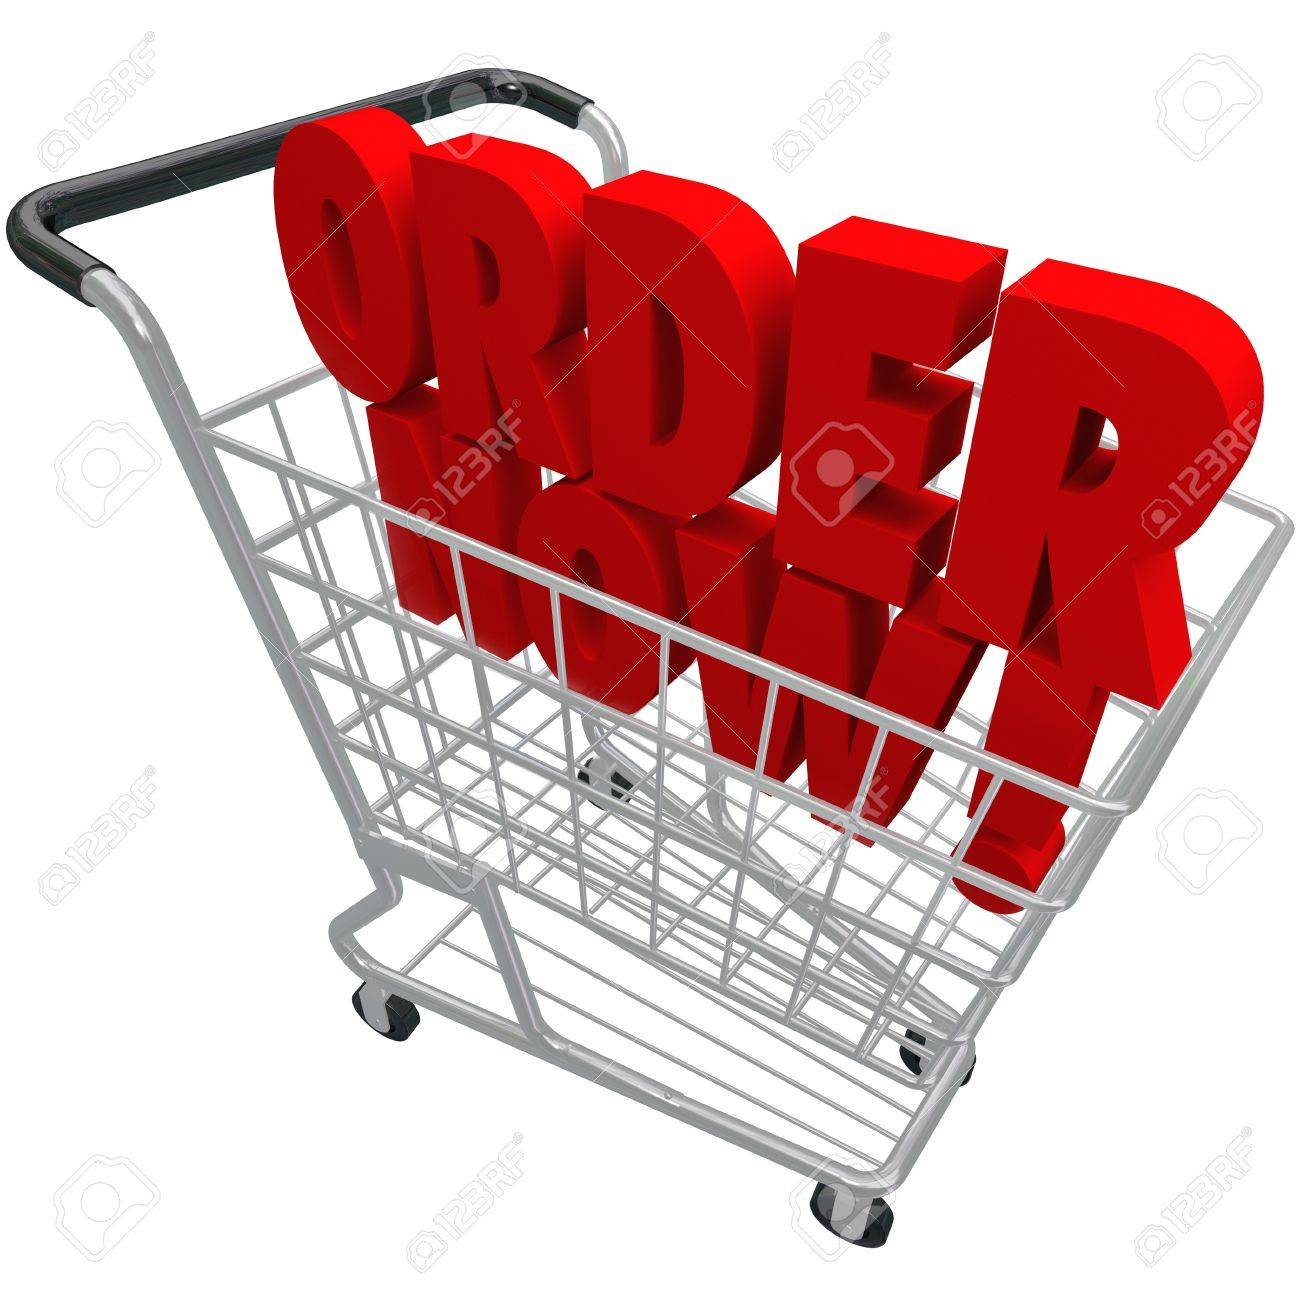 The words Order Now in a shopping basket to symbolize ecommerce and browsing or buying from an online store or shop Stock Photo - 19046242